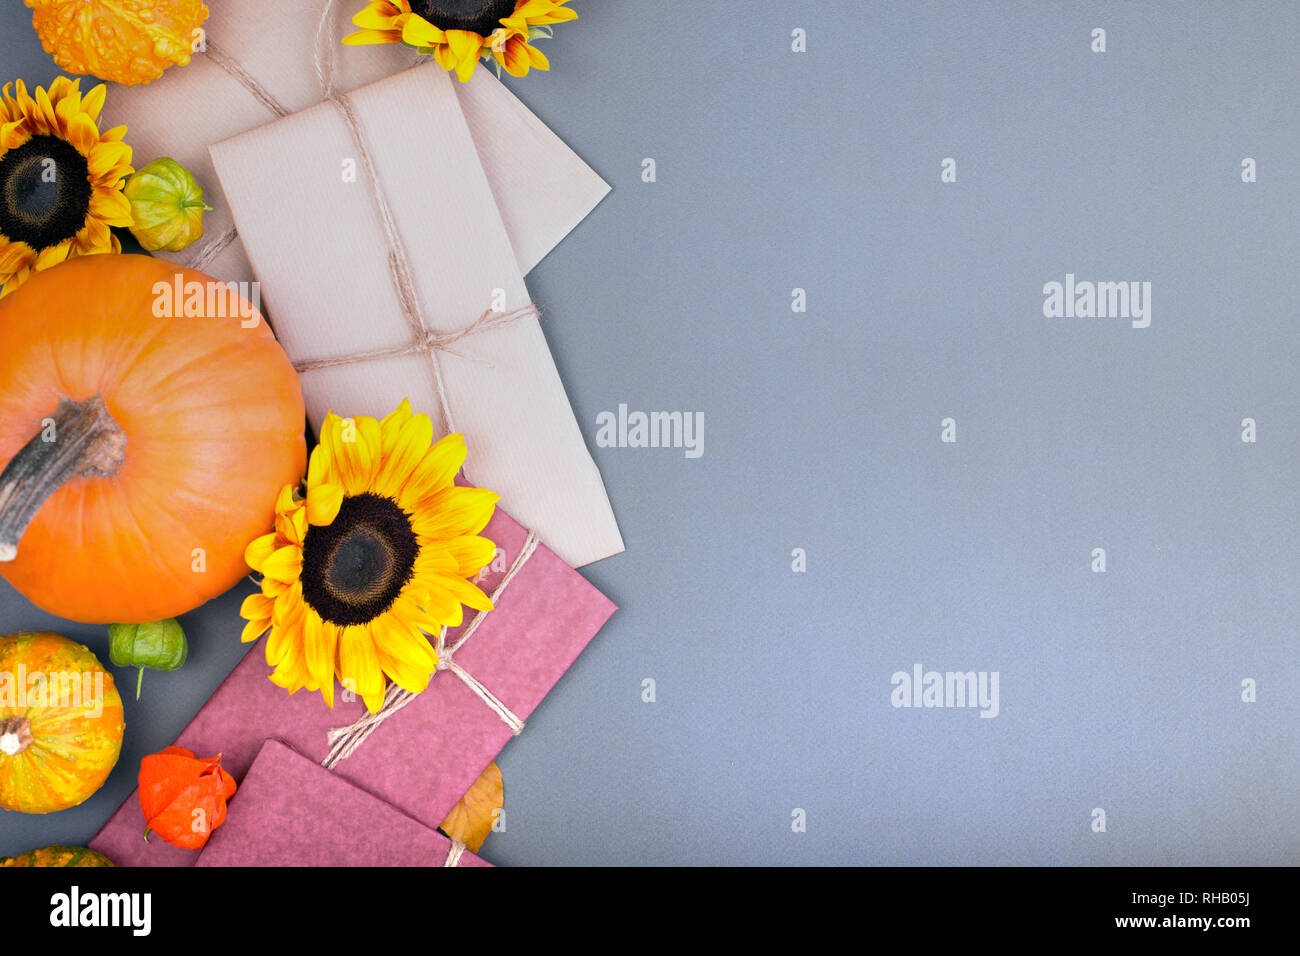 Top View Of Handcraft Gift Box And Pumpkins On Gray Background